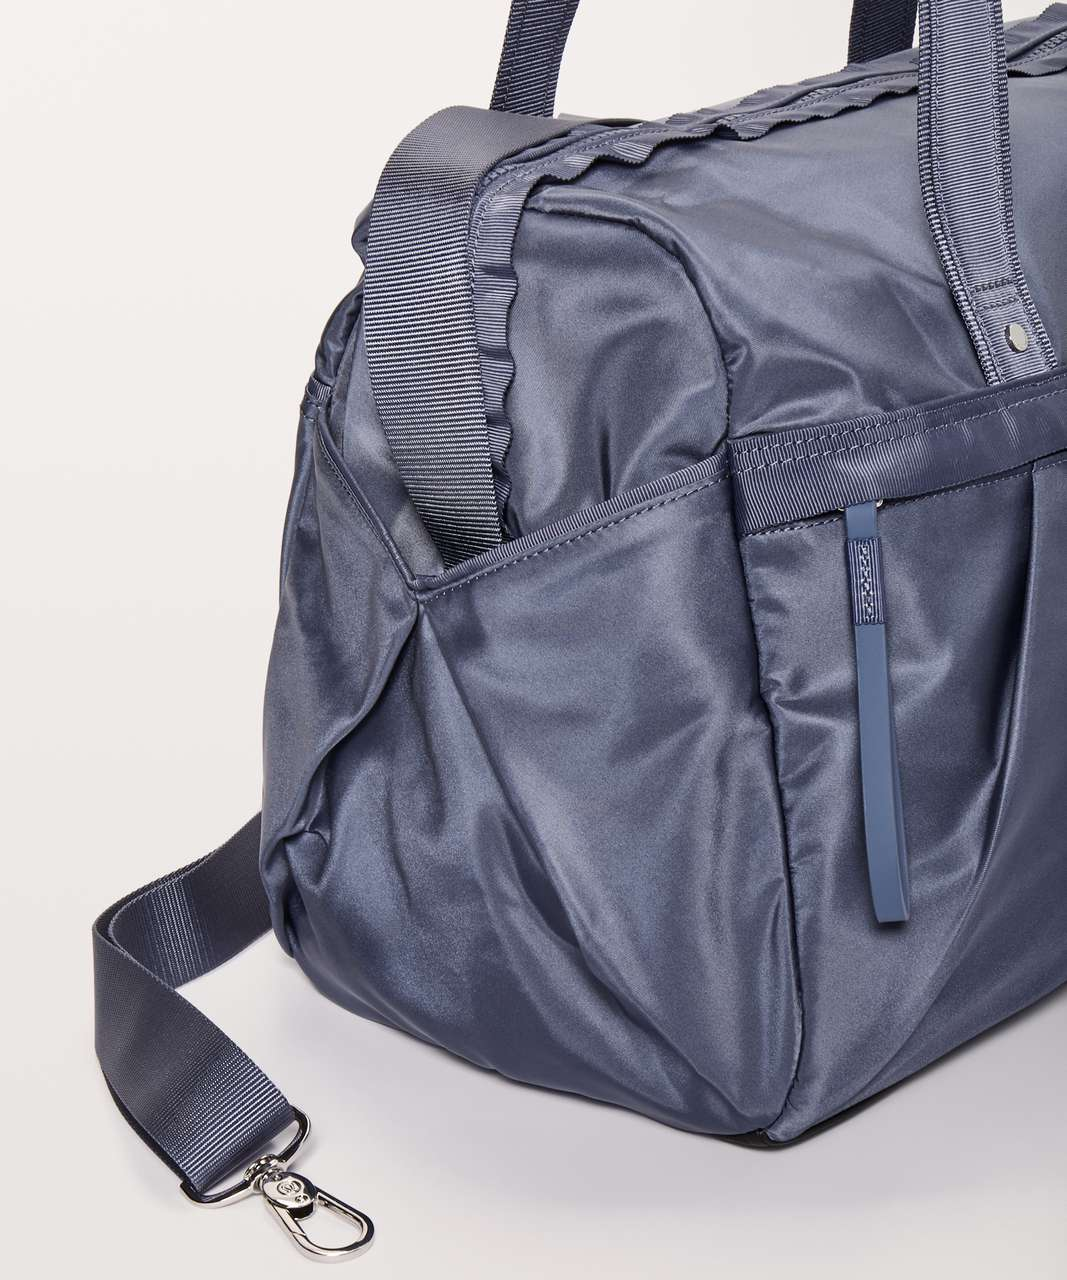 Lululemon All Day Duffel *Heatproof Pocket 31L - Shade